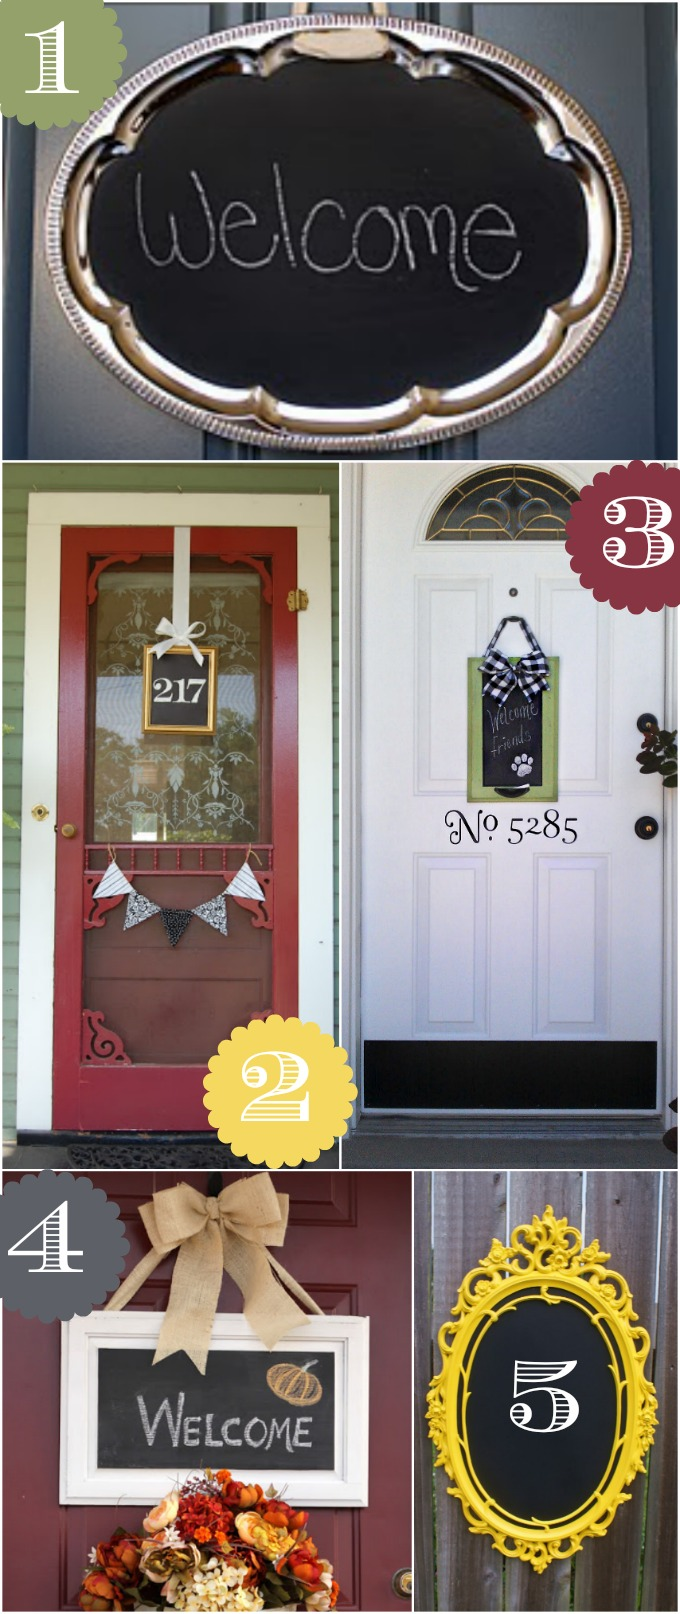 Admirable 36 Creative Front Door Decor Ideas Not A Wreath Home Stories A Largest Home Design Picture Inspirations Pitcheantrous